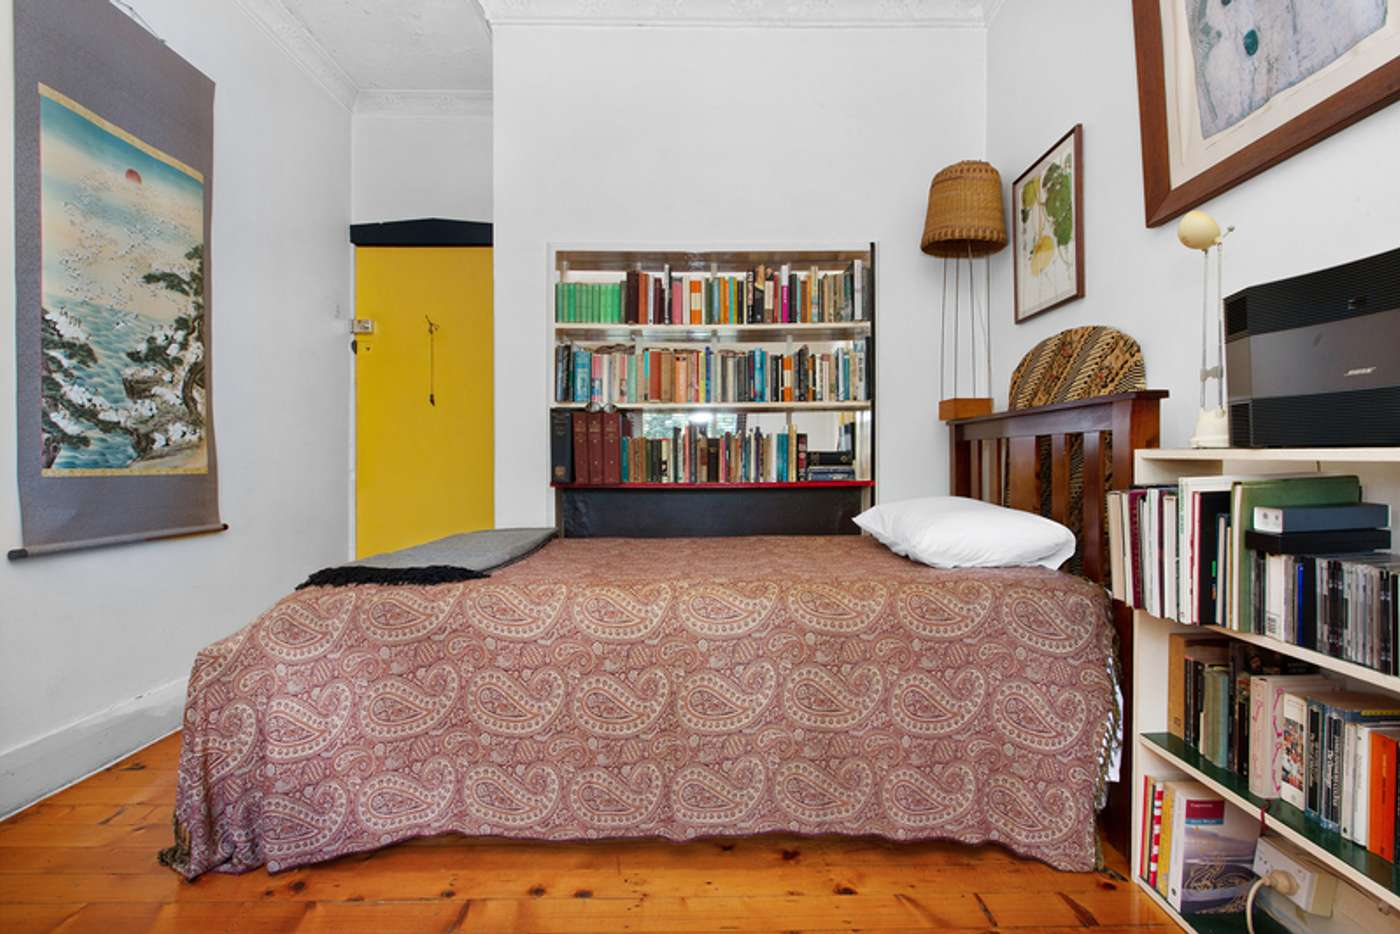 Main view of Homely studio listing, 7/41 Roslyn Street, Rushcutters Bay NSW 2011